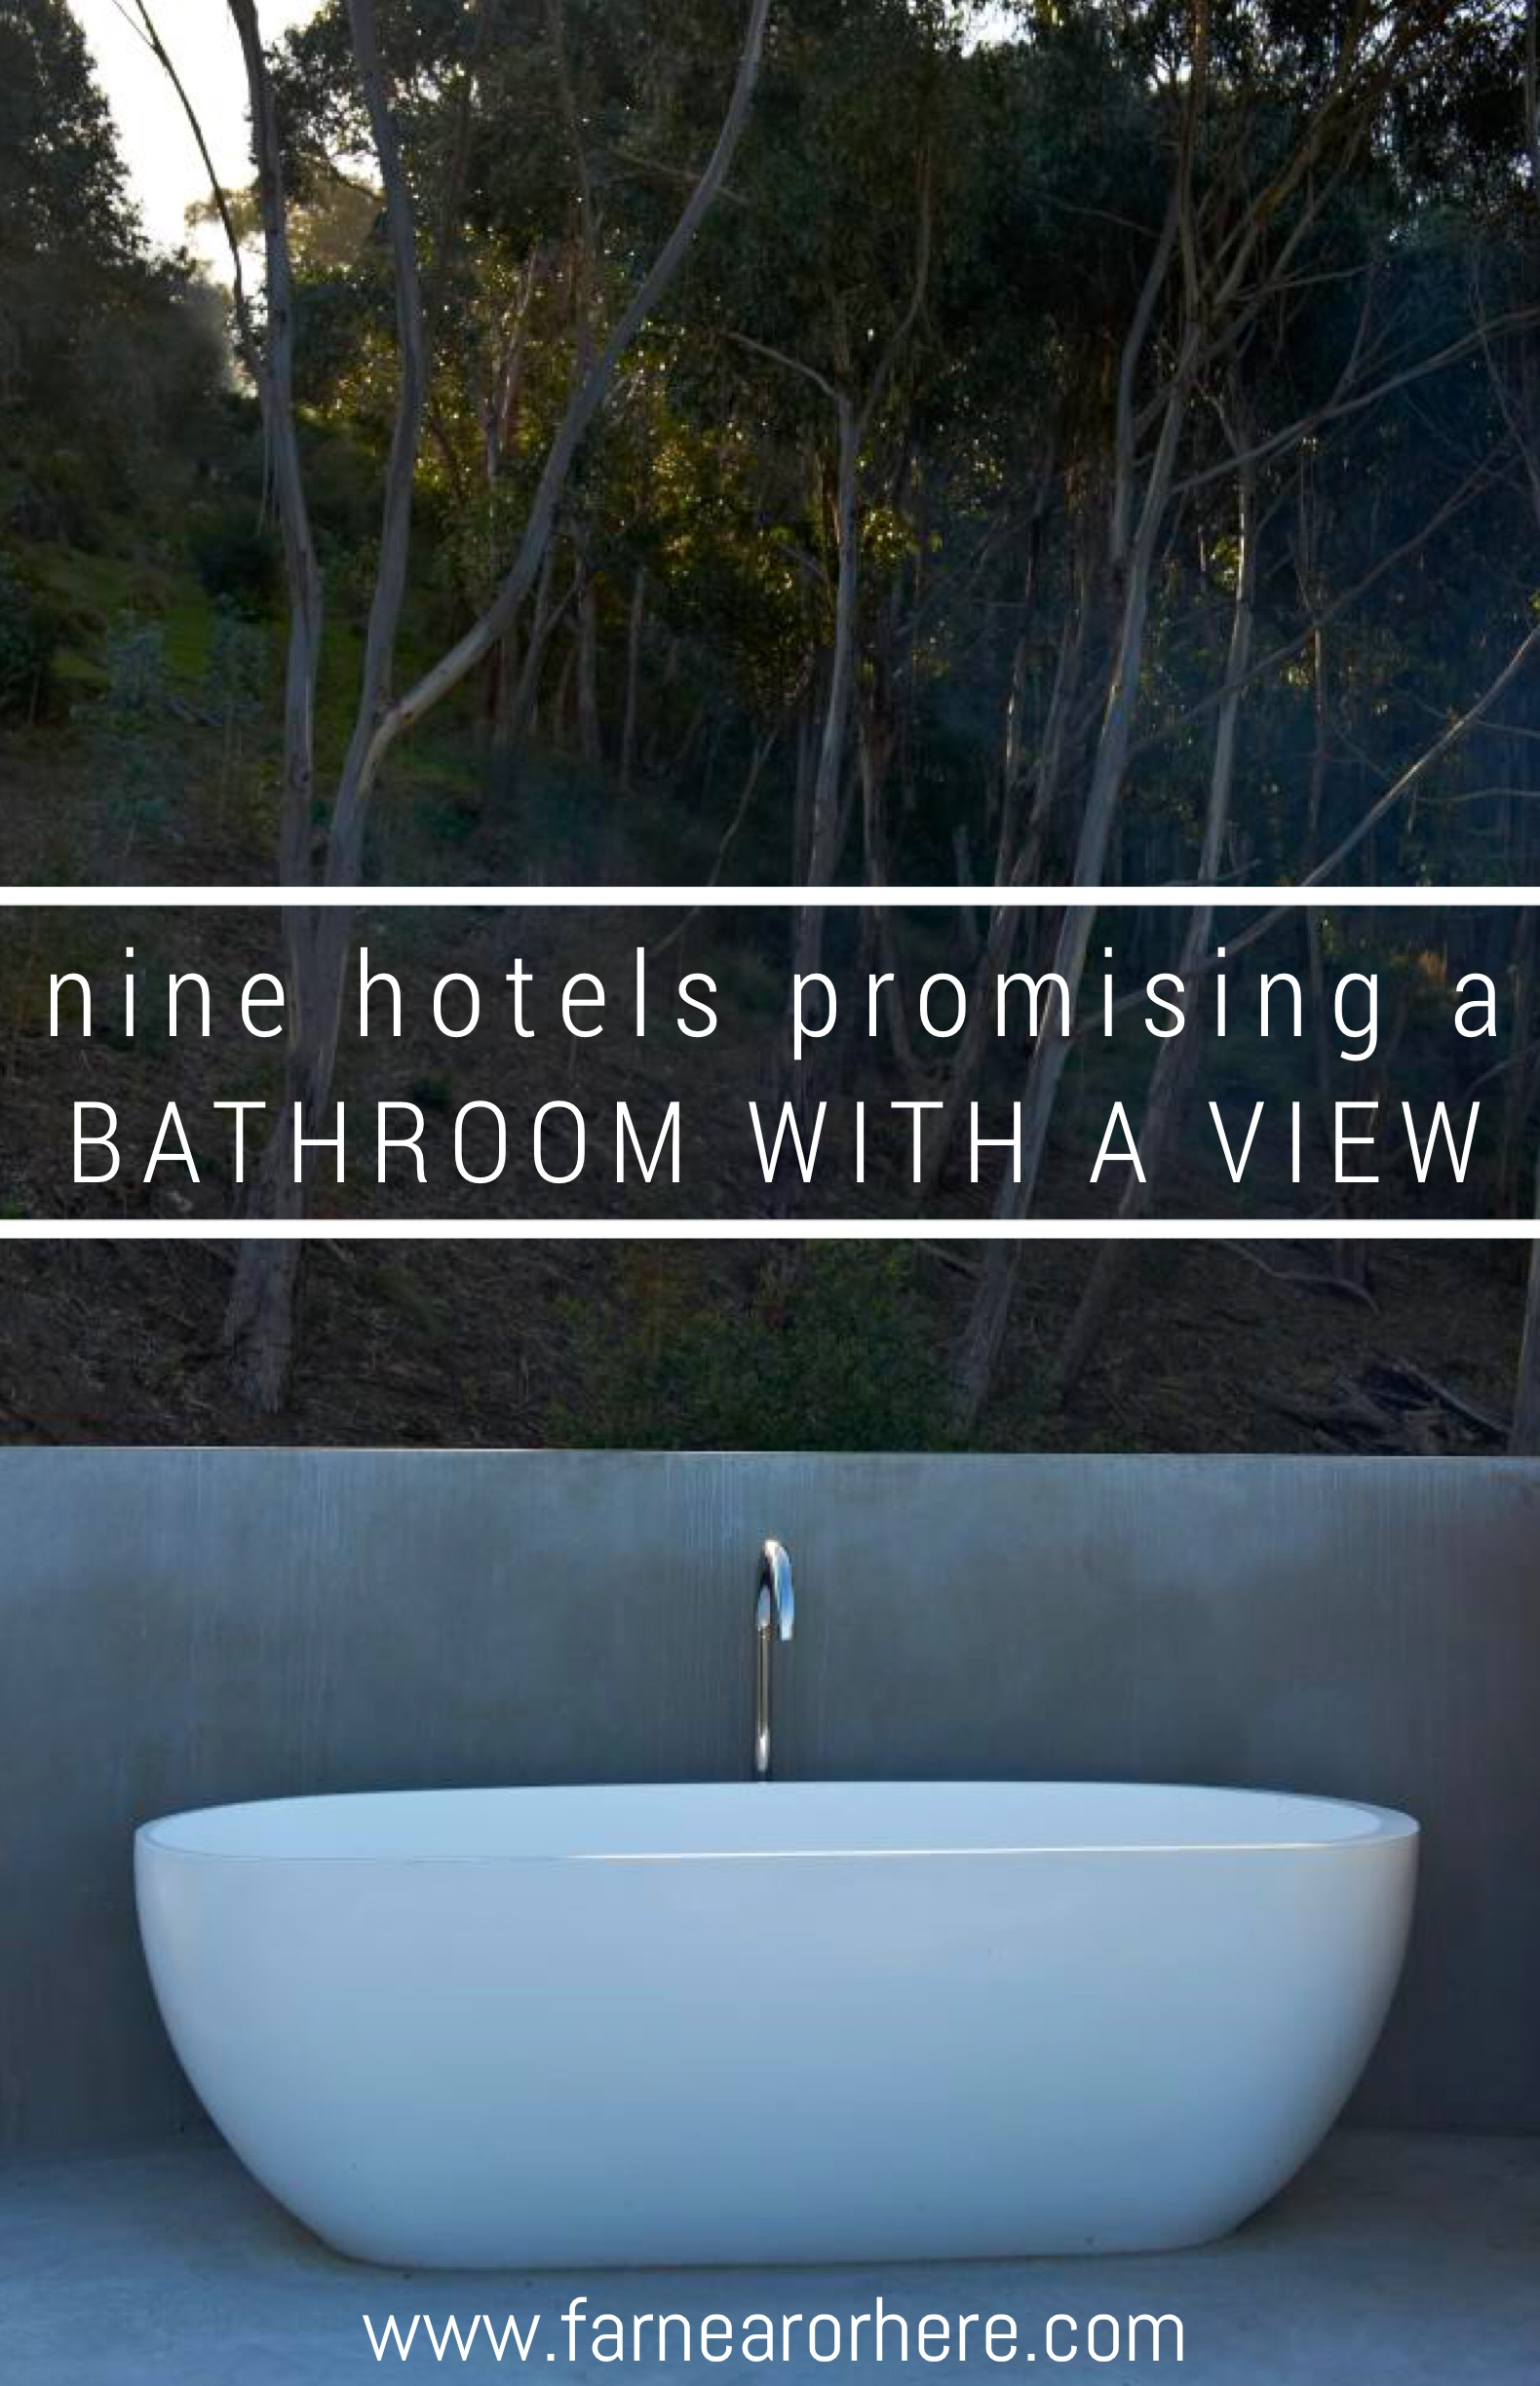 Stay in a hotel boasting a bathroom with a view...